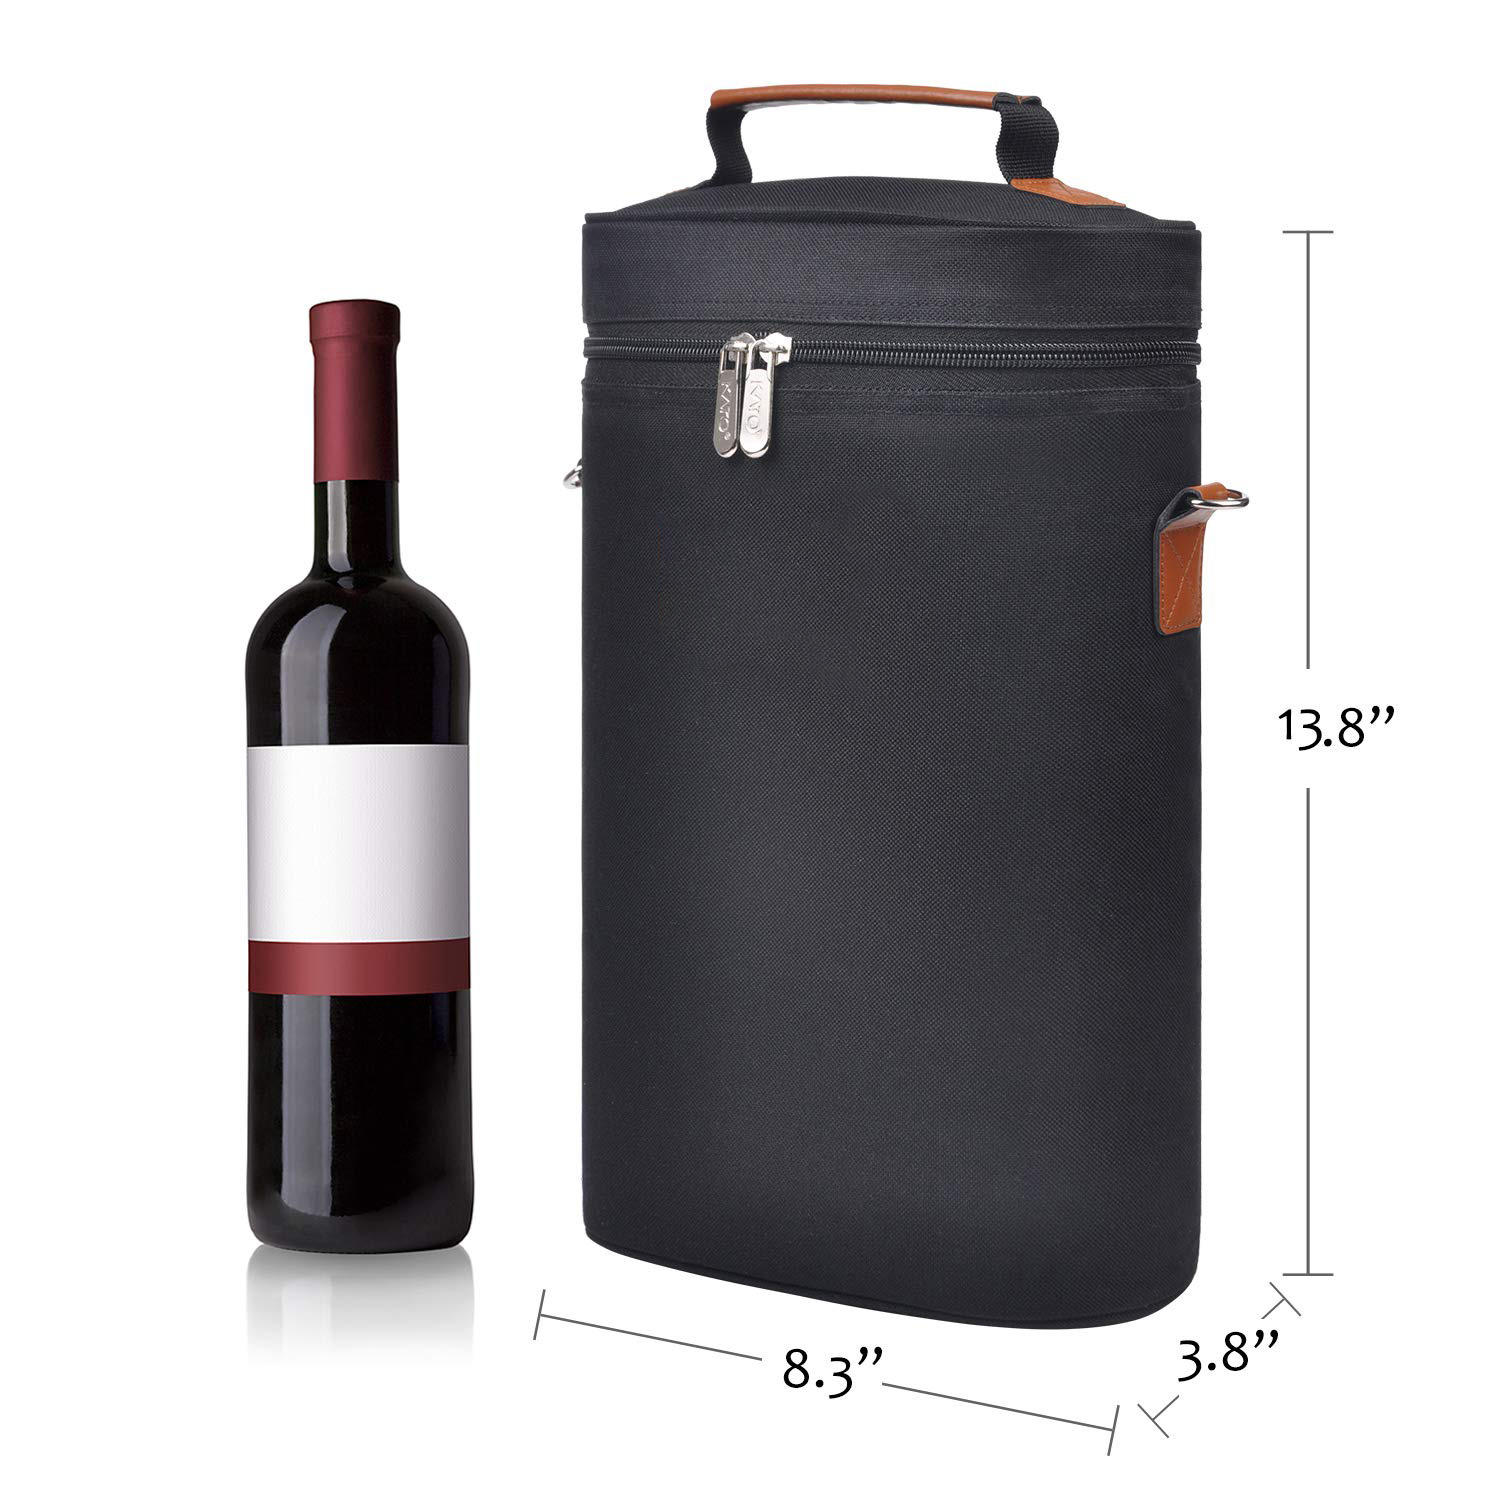 2 Bottle Wine Carrier Bag Tote Insulated champagne tote bag Waterproof picnic BOX wine cooler bag